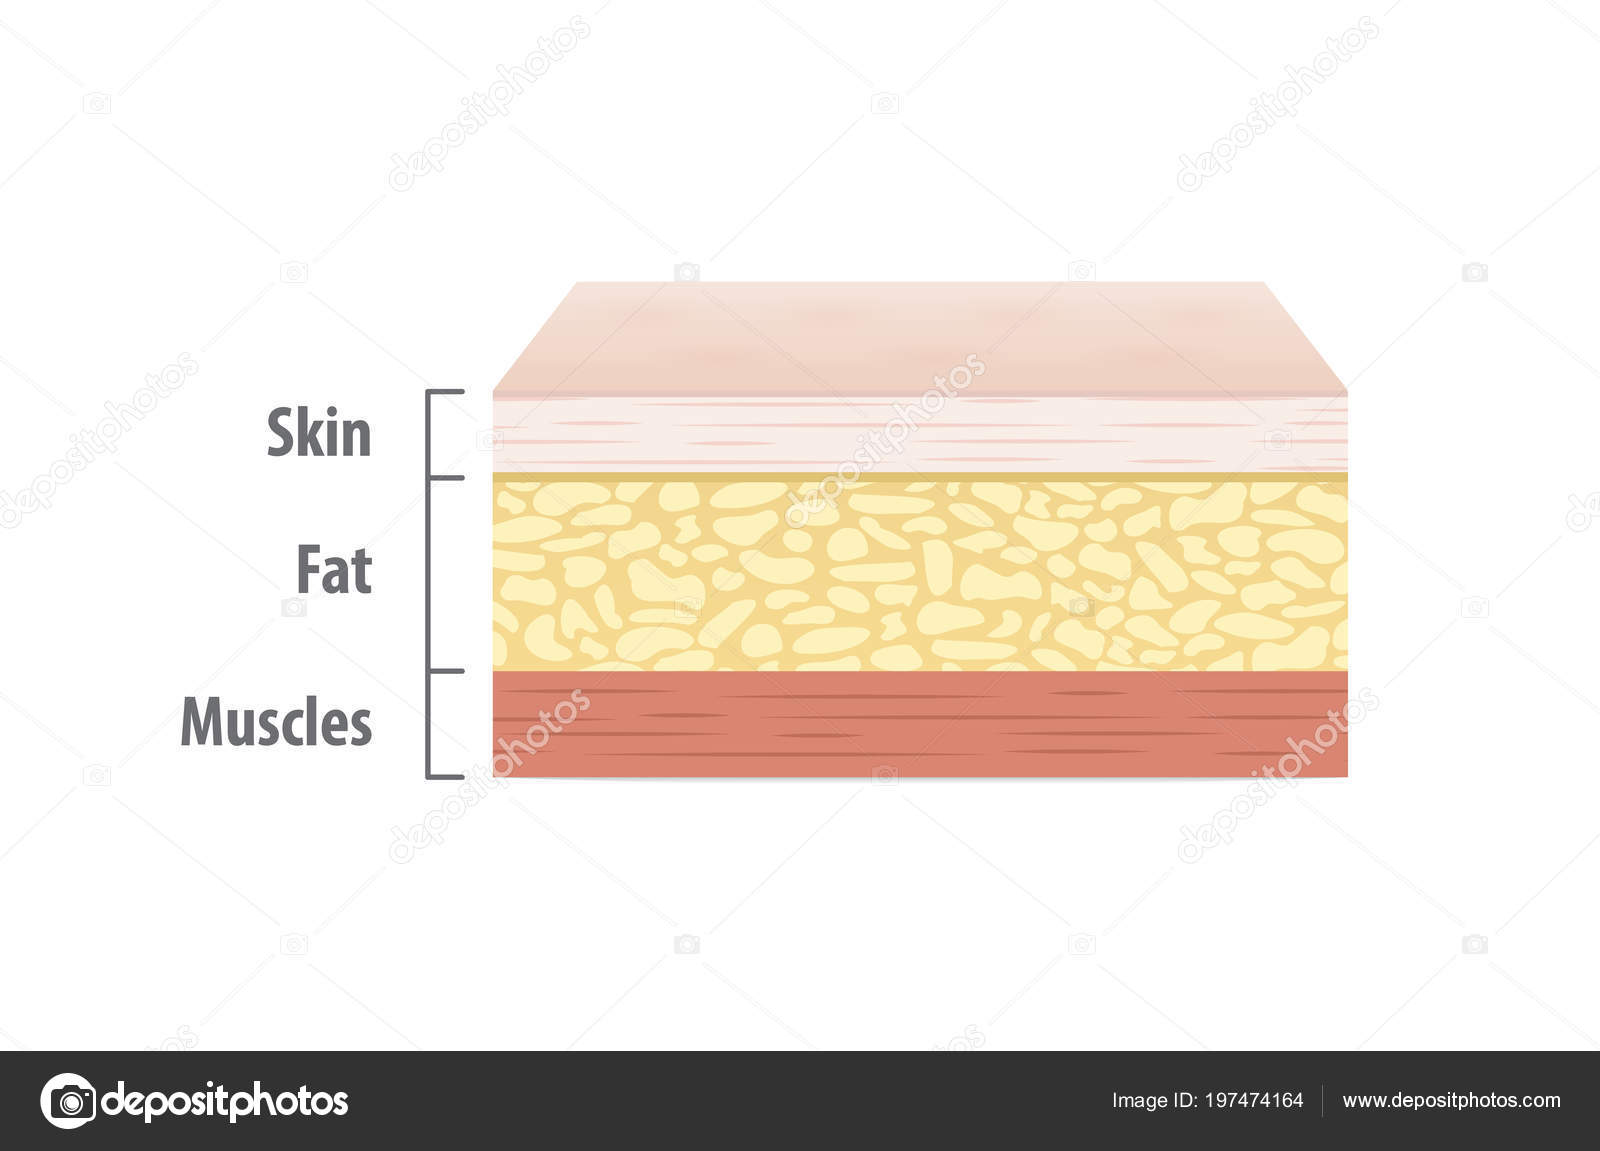 Layers Skin Illustration Vector White Background Medical Concept